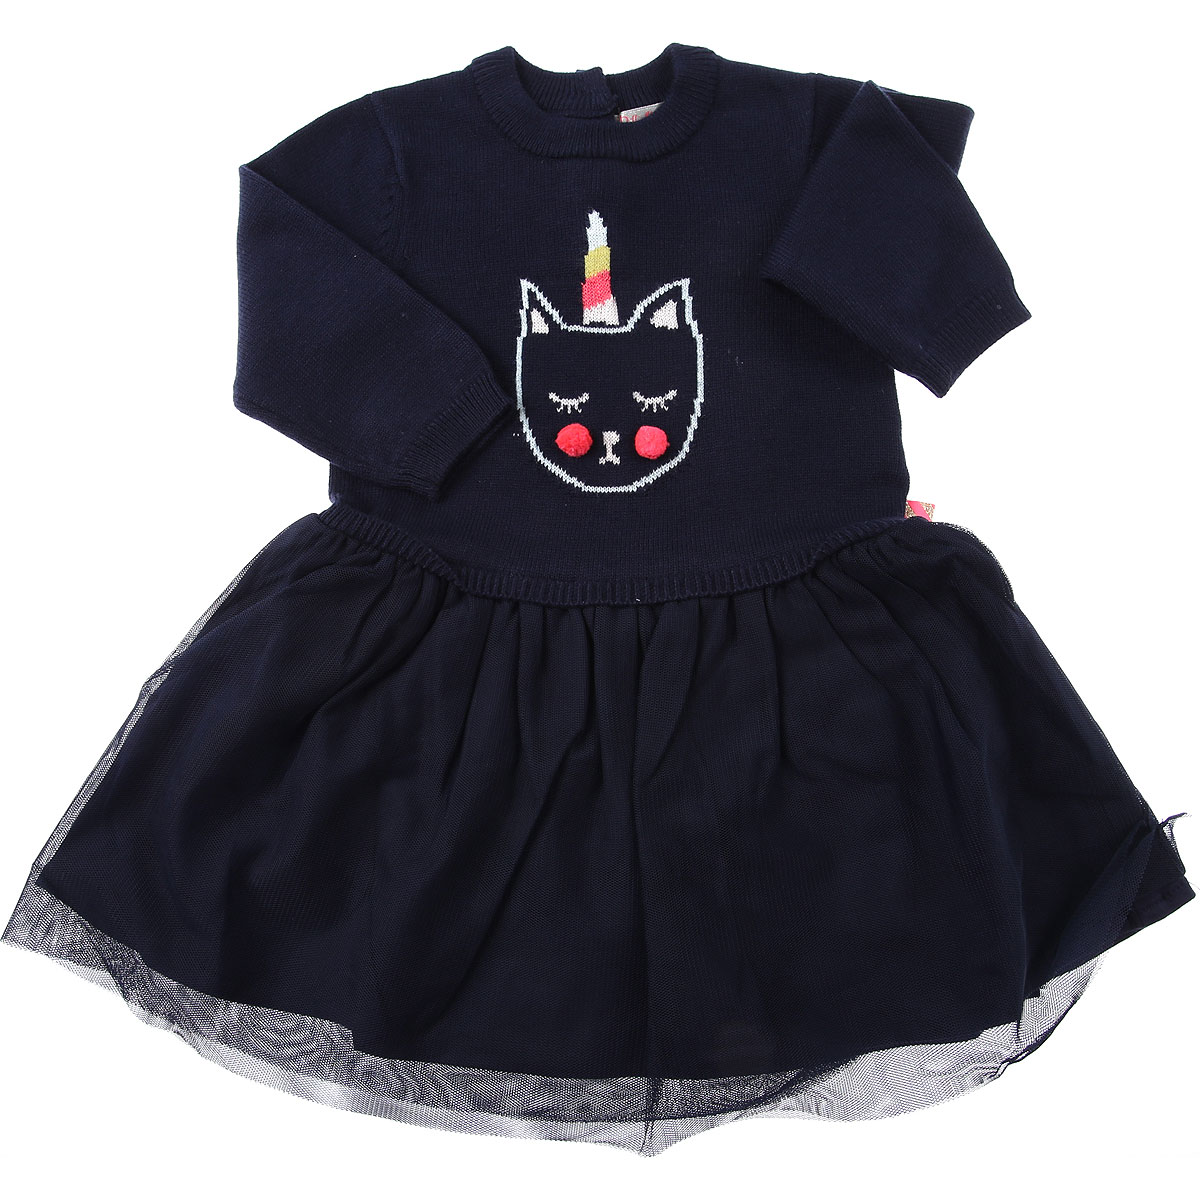 Billieblush Baby Dress for Girls On Sale, navy, polyamide, 2019, 12M 18M 6M 9M